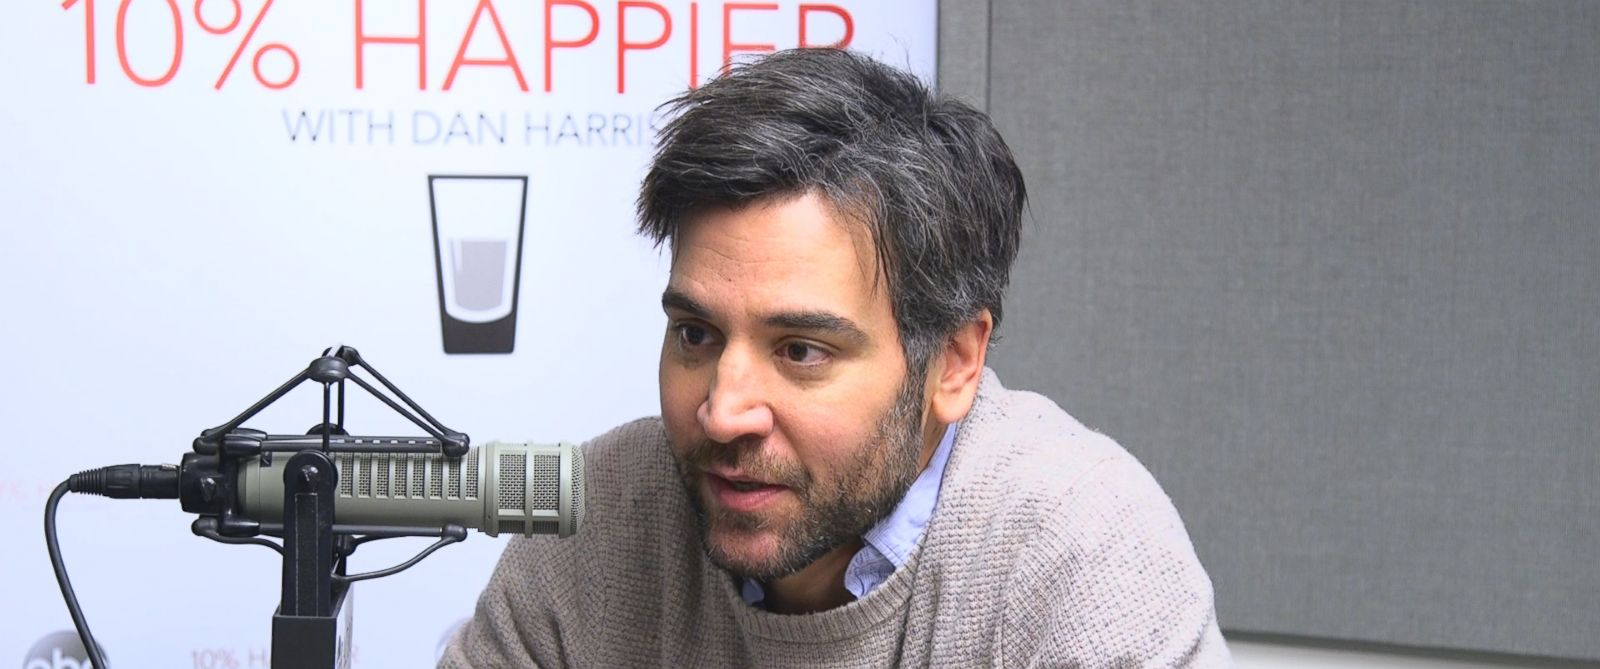 """Actor, writer and director Josh Radnor appears in an interview for """"10% Happier"""" with ABCs Dan Harris."""